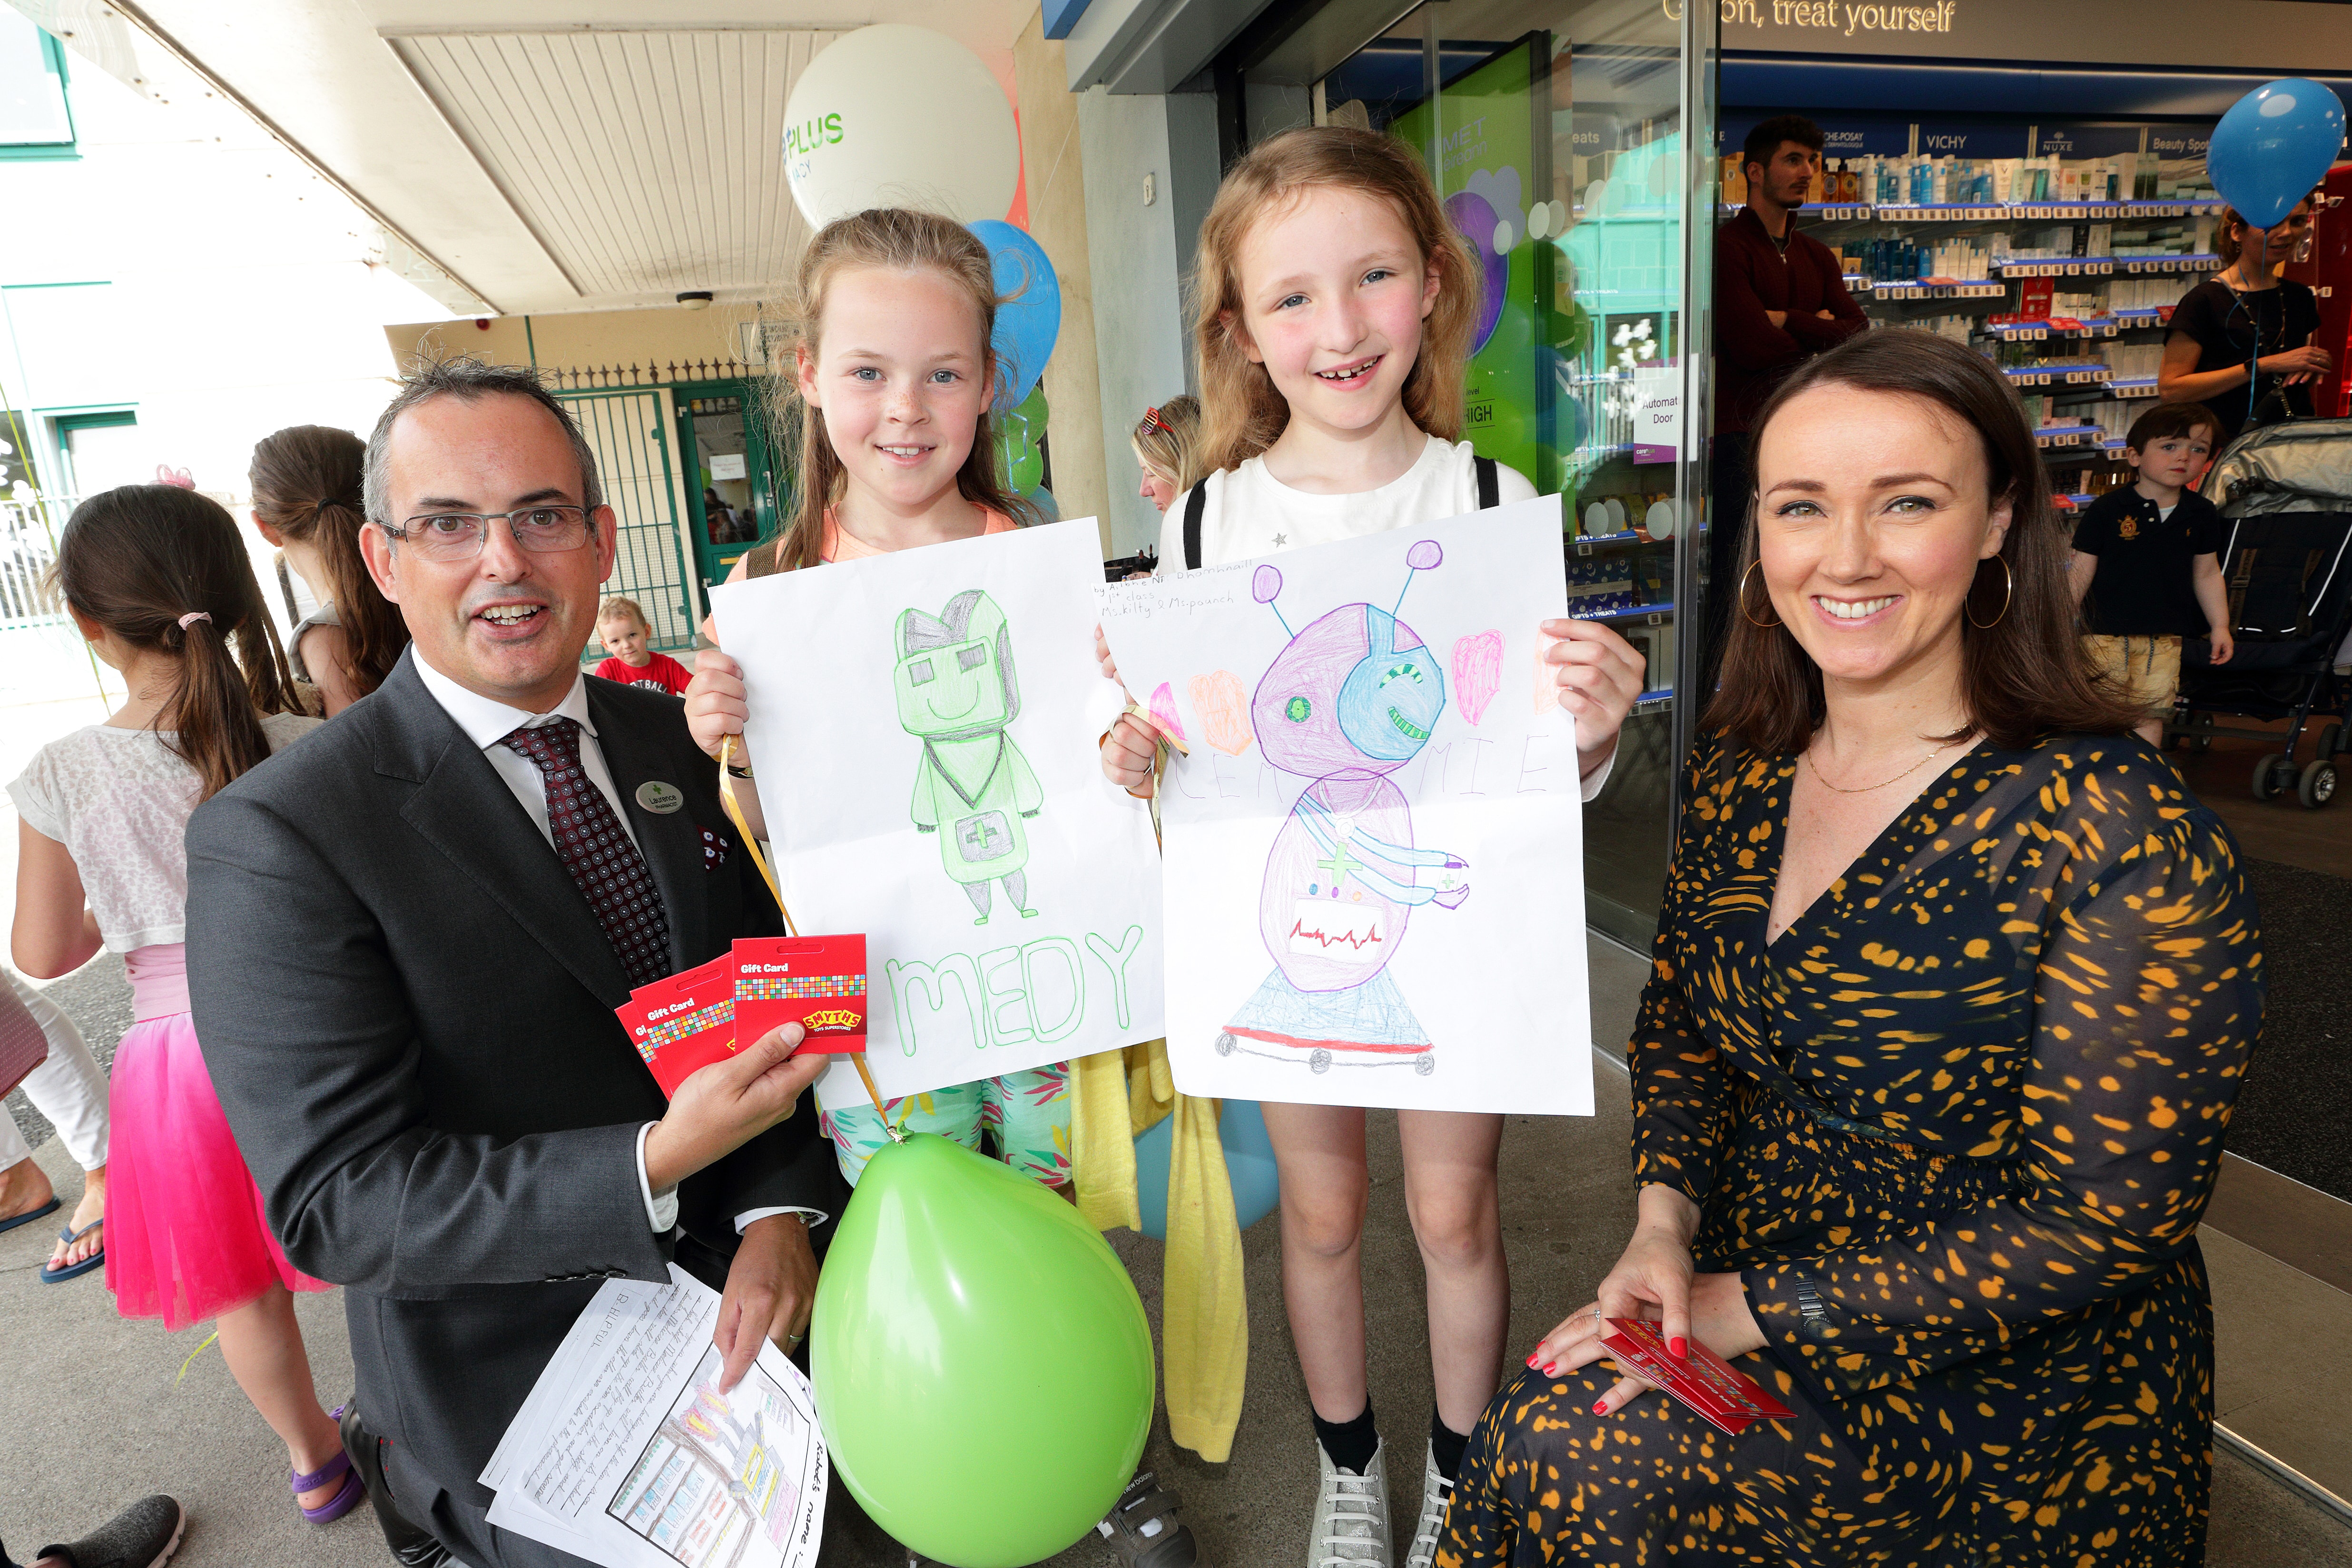 Grand Opening of Park CarePlus Pharmacy in Cabinteely, County Dublin, colouring competition